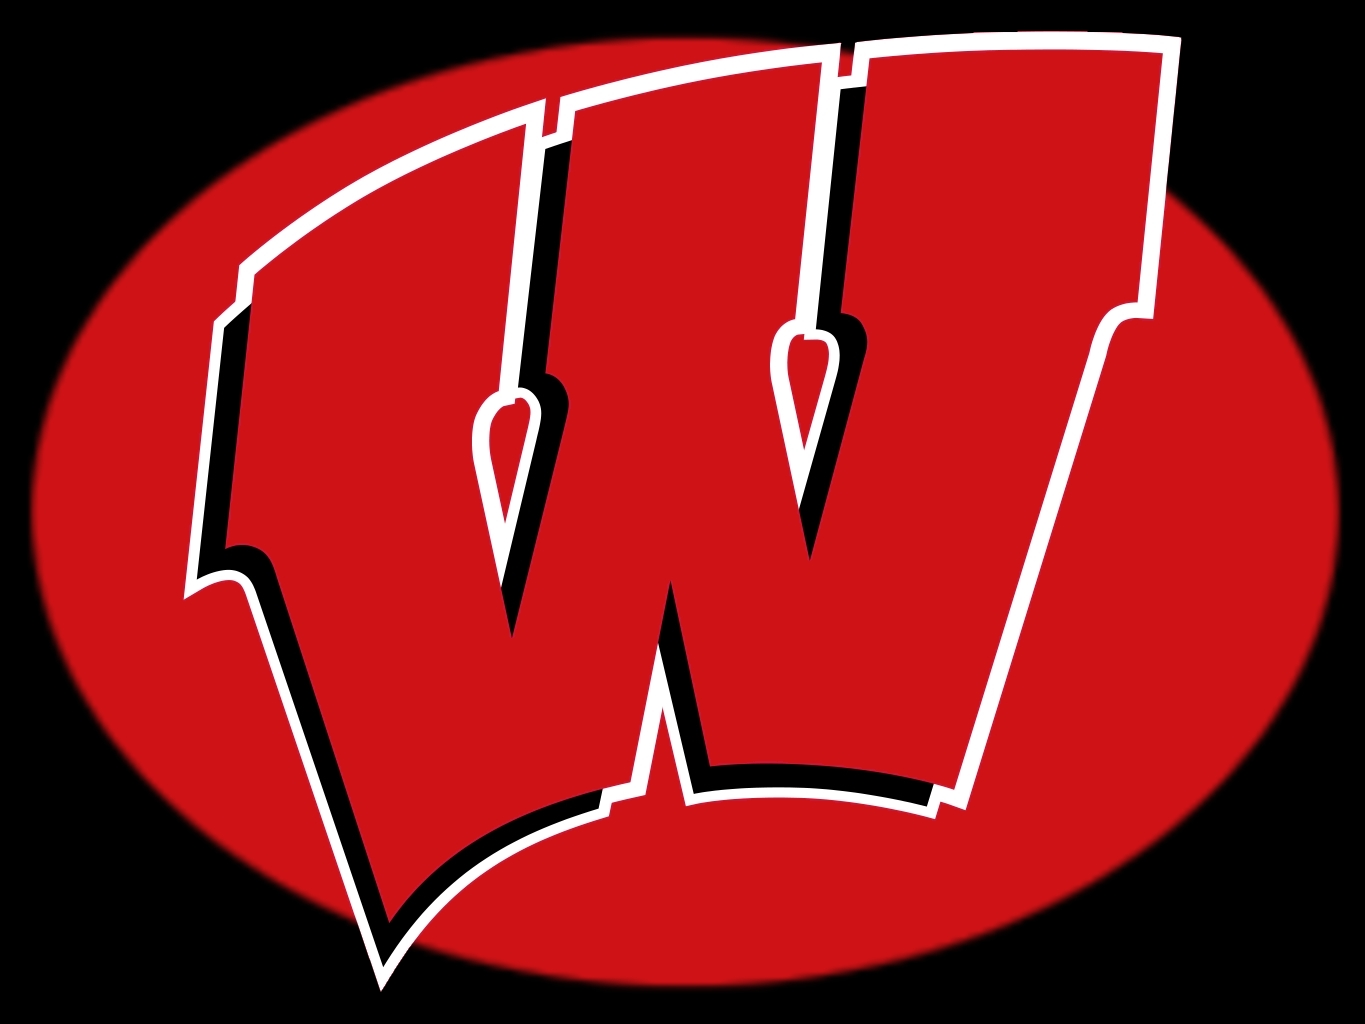 Wisconsin badgers logo clipart vector black and white stock Free Wisconsin Football Cliparts, Download Free Clip Art ... vector black and white stock